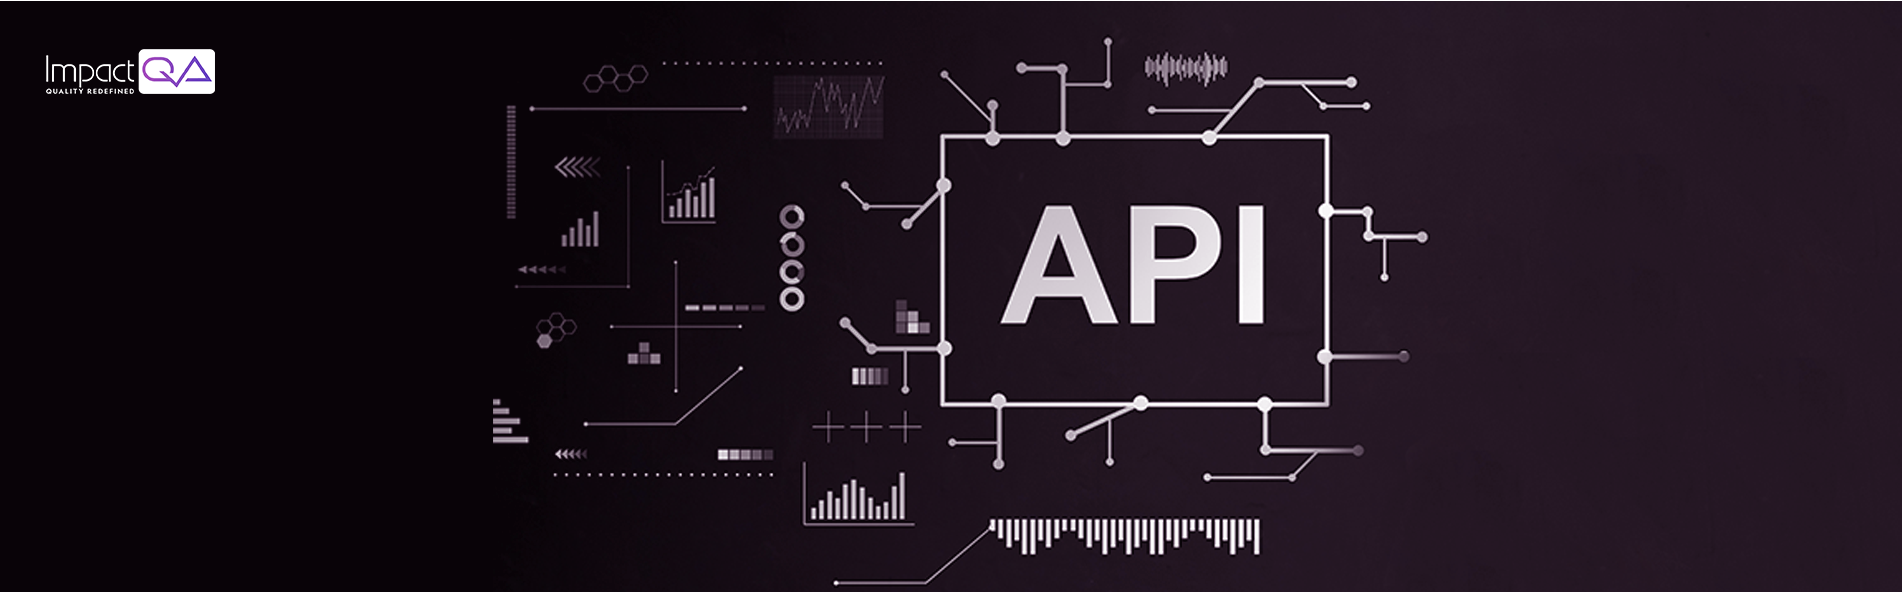 Top 6 Challenges of API Testing